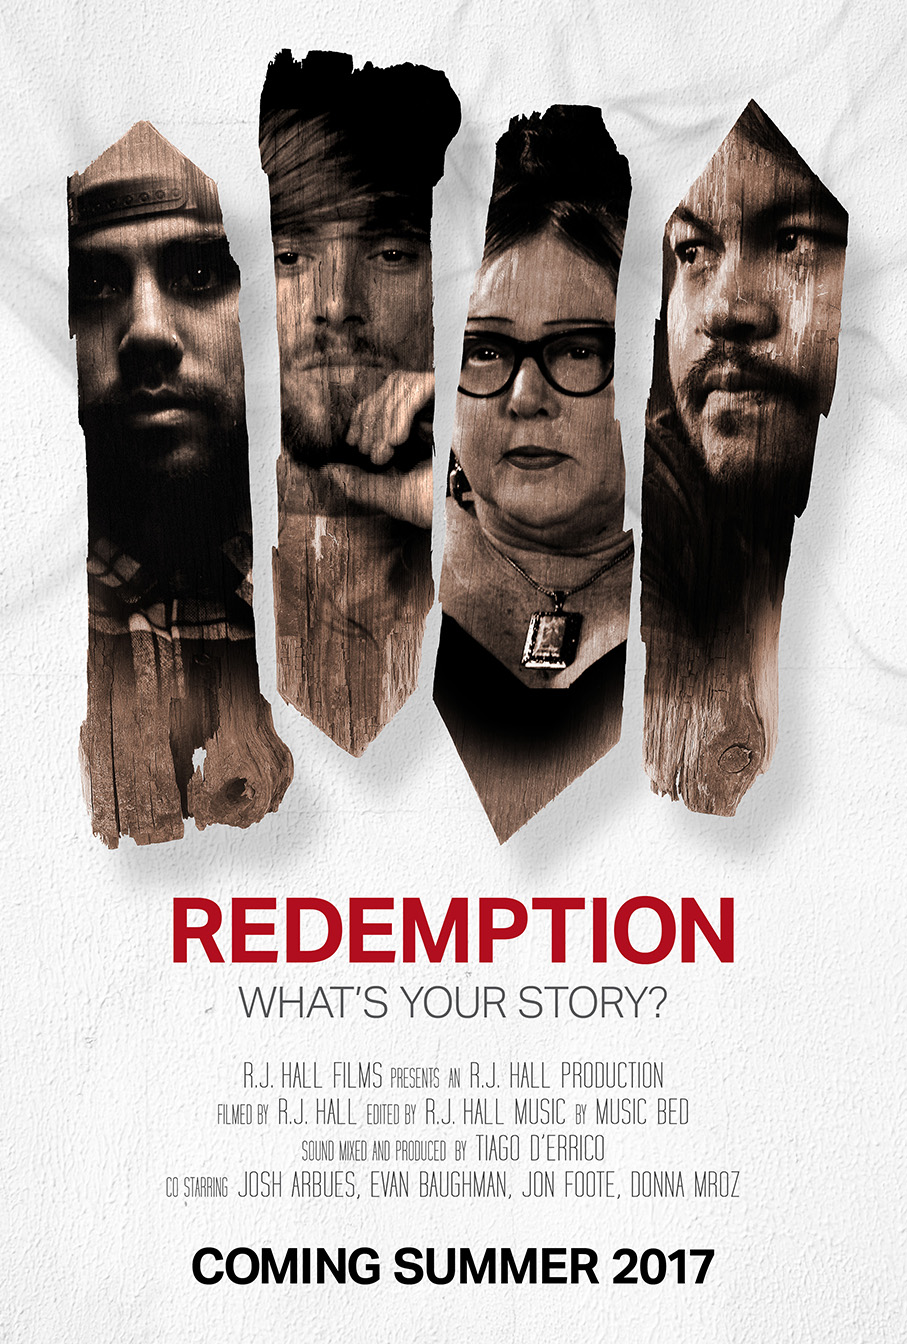 WHAT'S YOUR STORY? - Everyone has a story. We all have things that we struggle with. Redemption the movie is final here! Be inspired by this short documentary that showcases God's beautiful love and grace within these 4 people's stories.